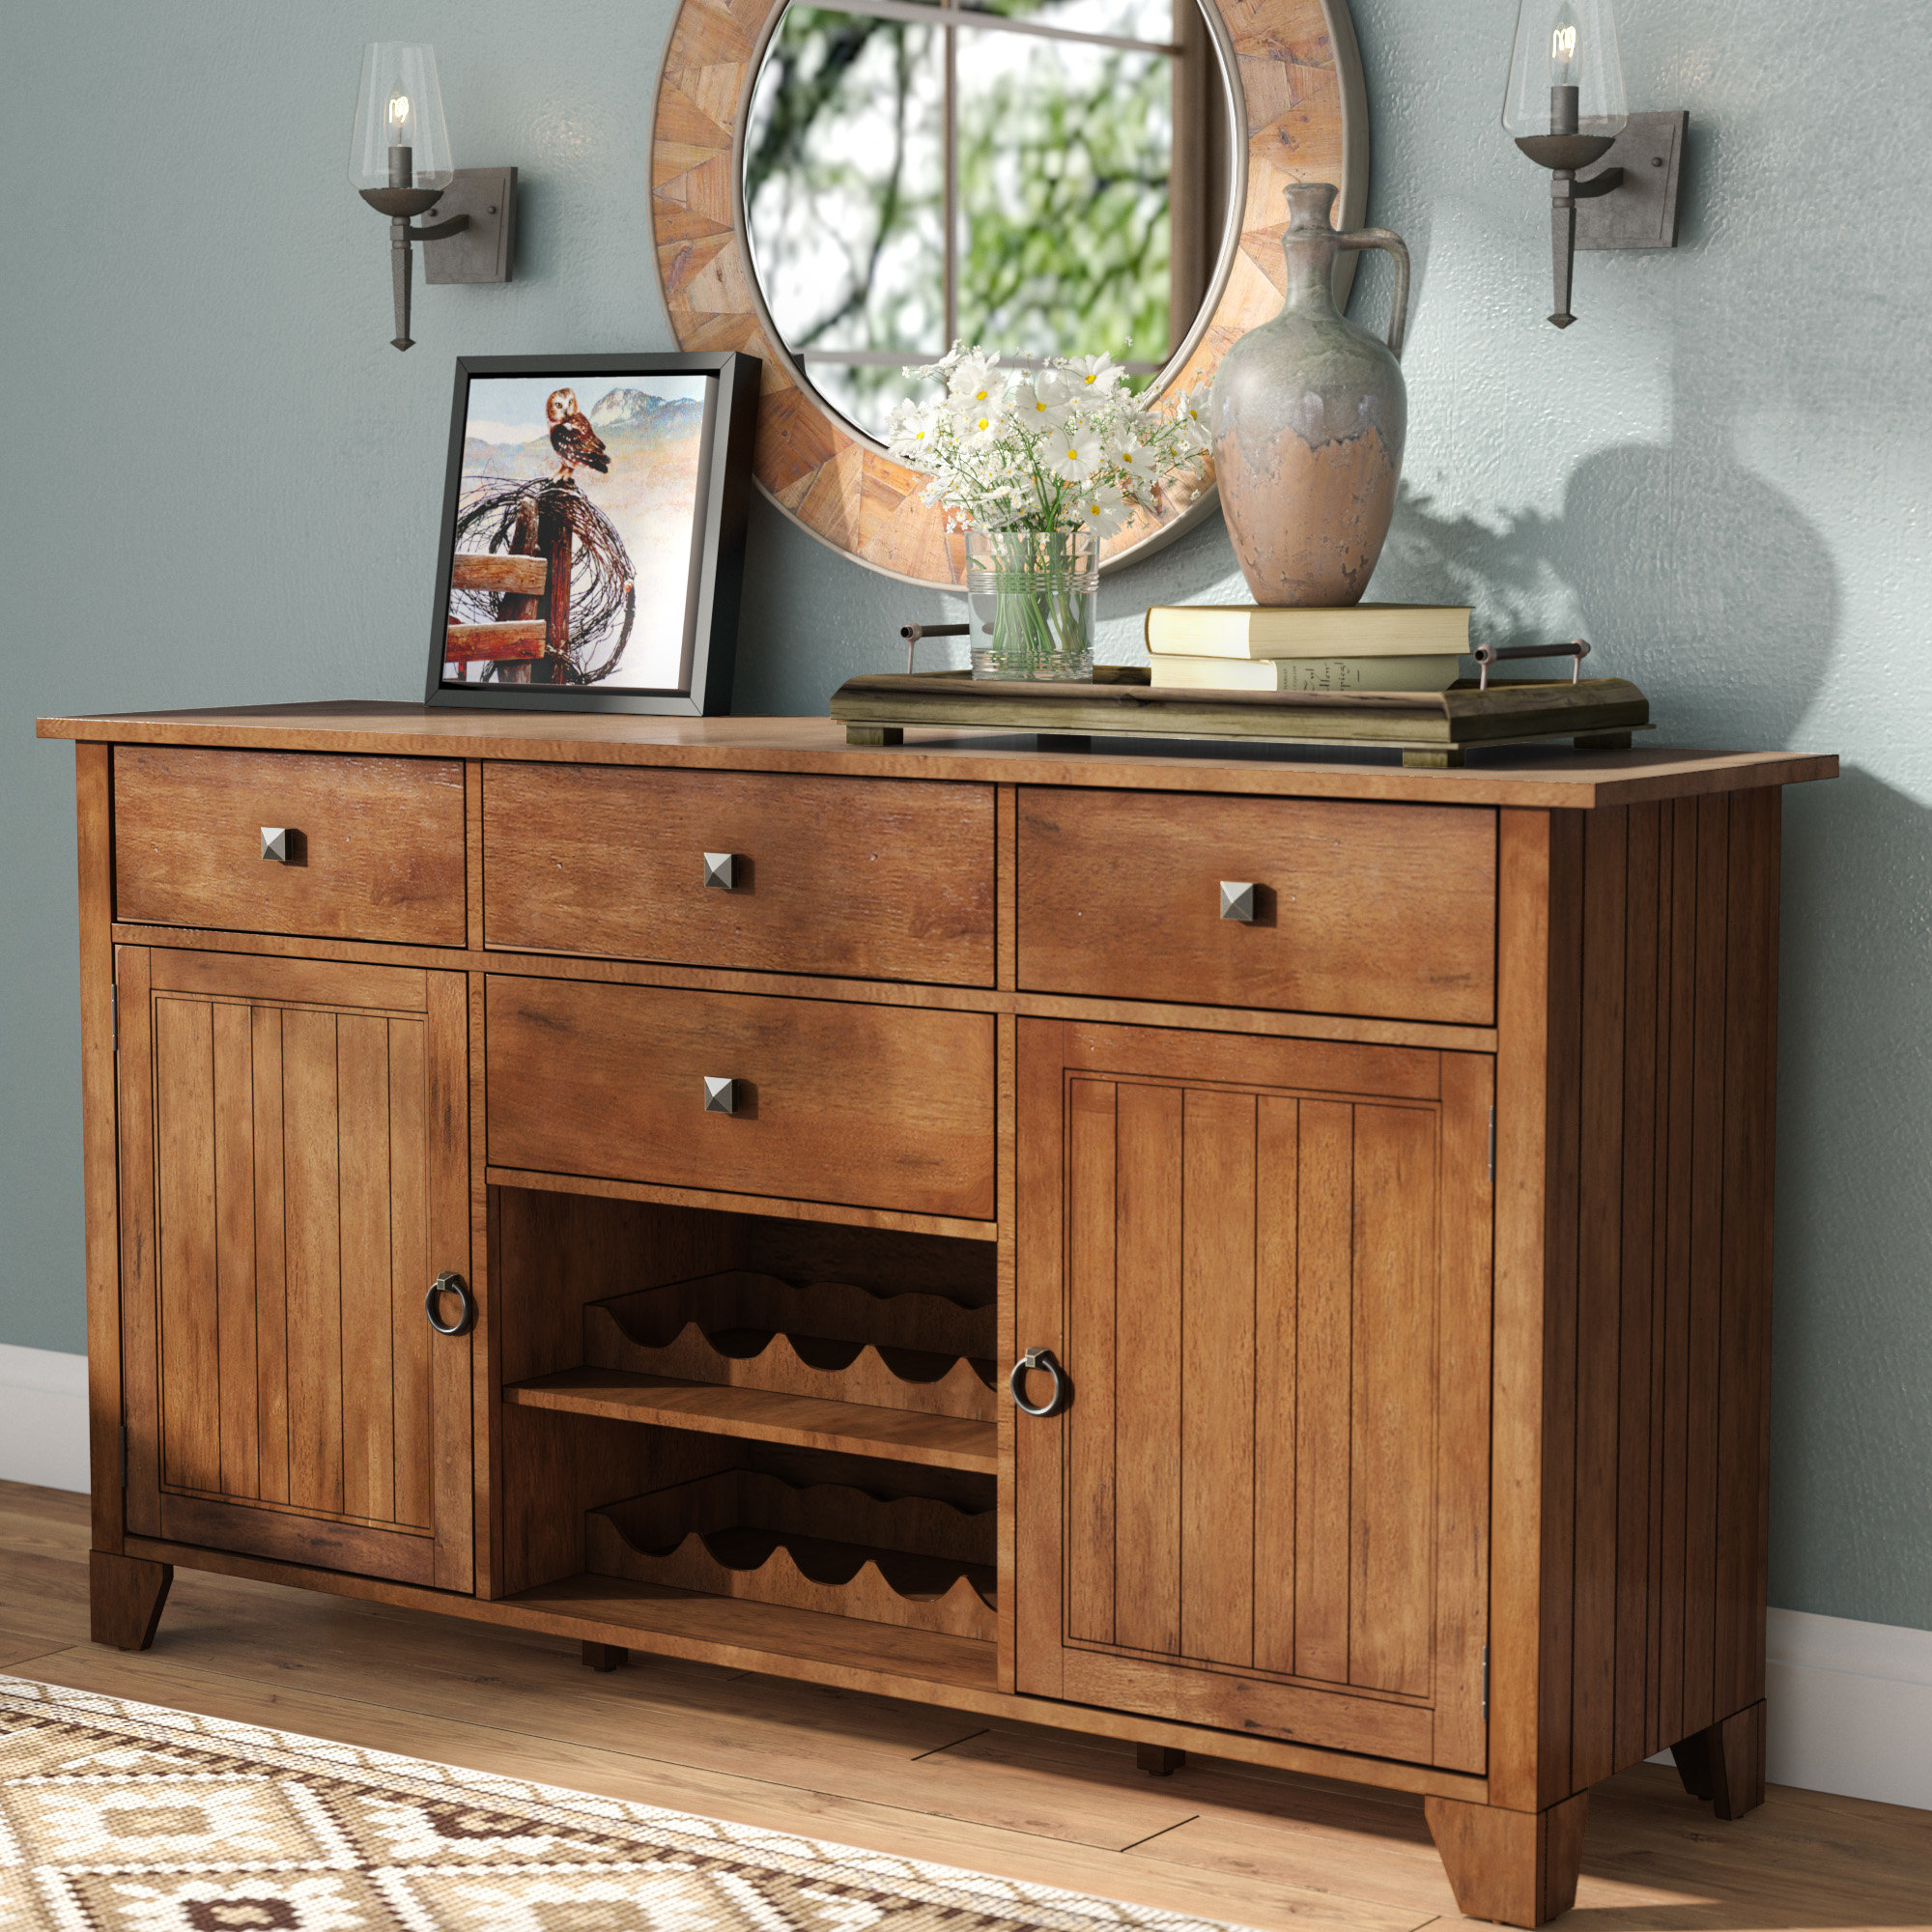 Birchley Sideboard With Best And Newest Nashoba Sideboards (View 15 of 20)